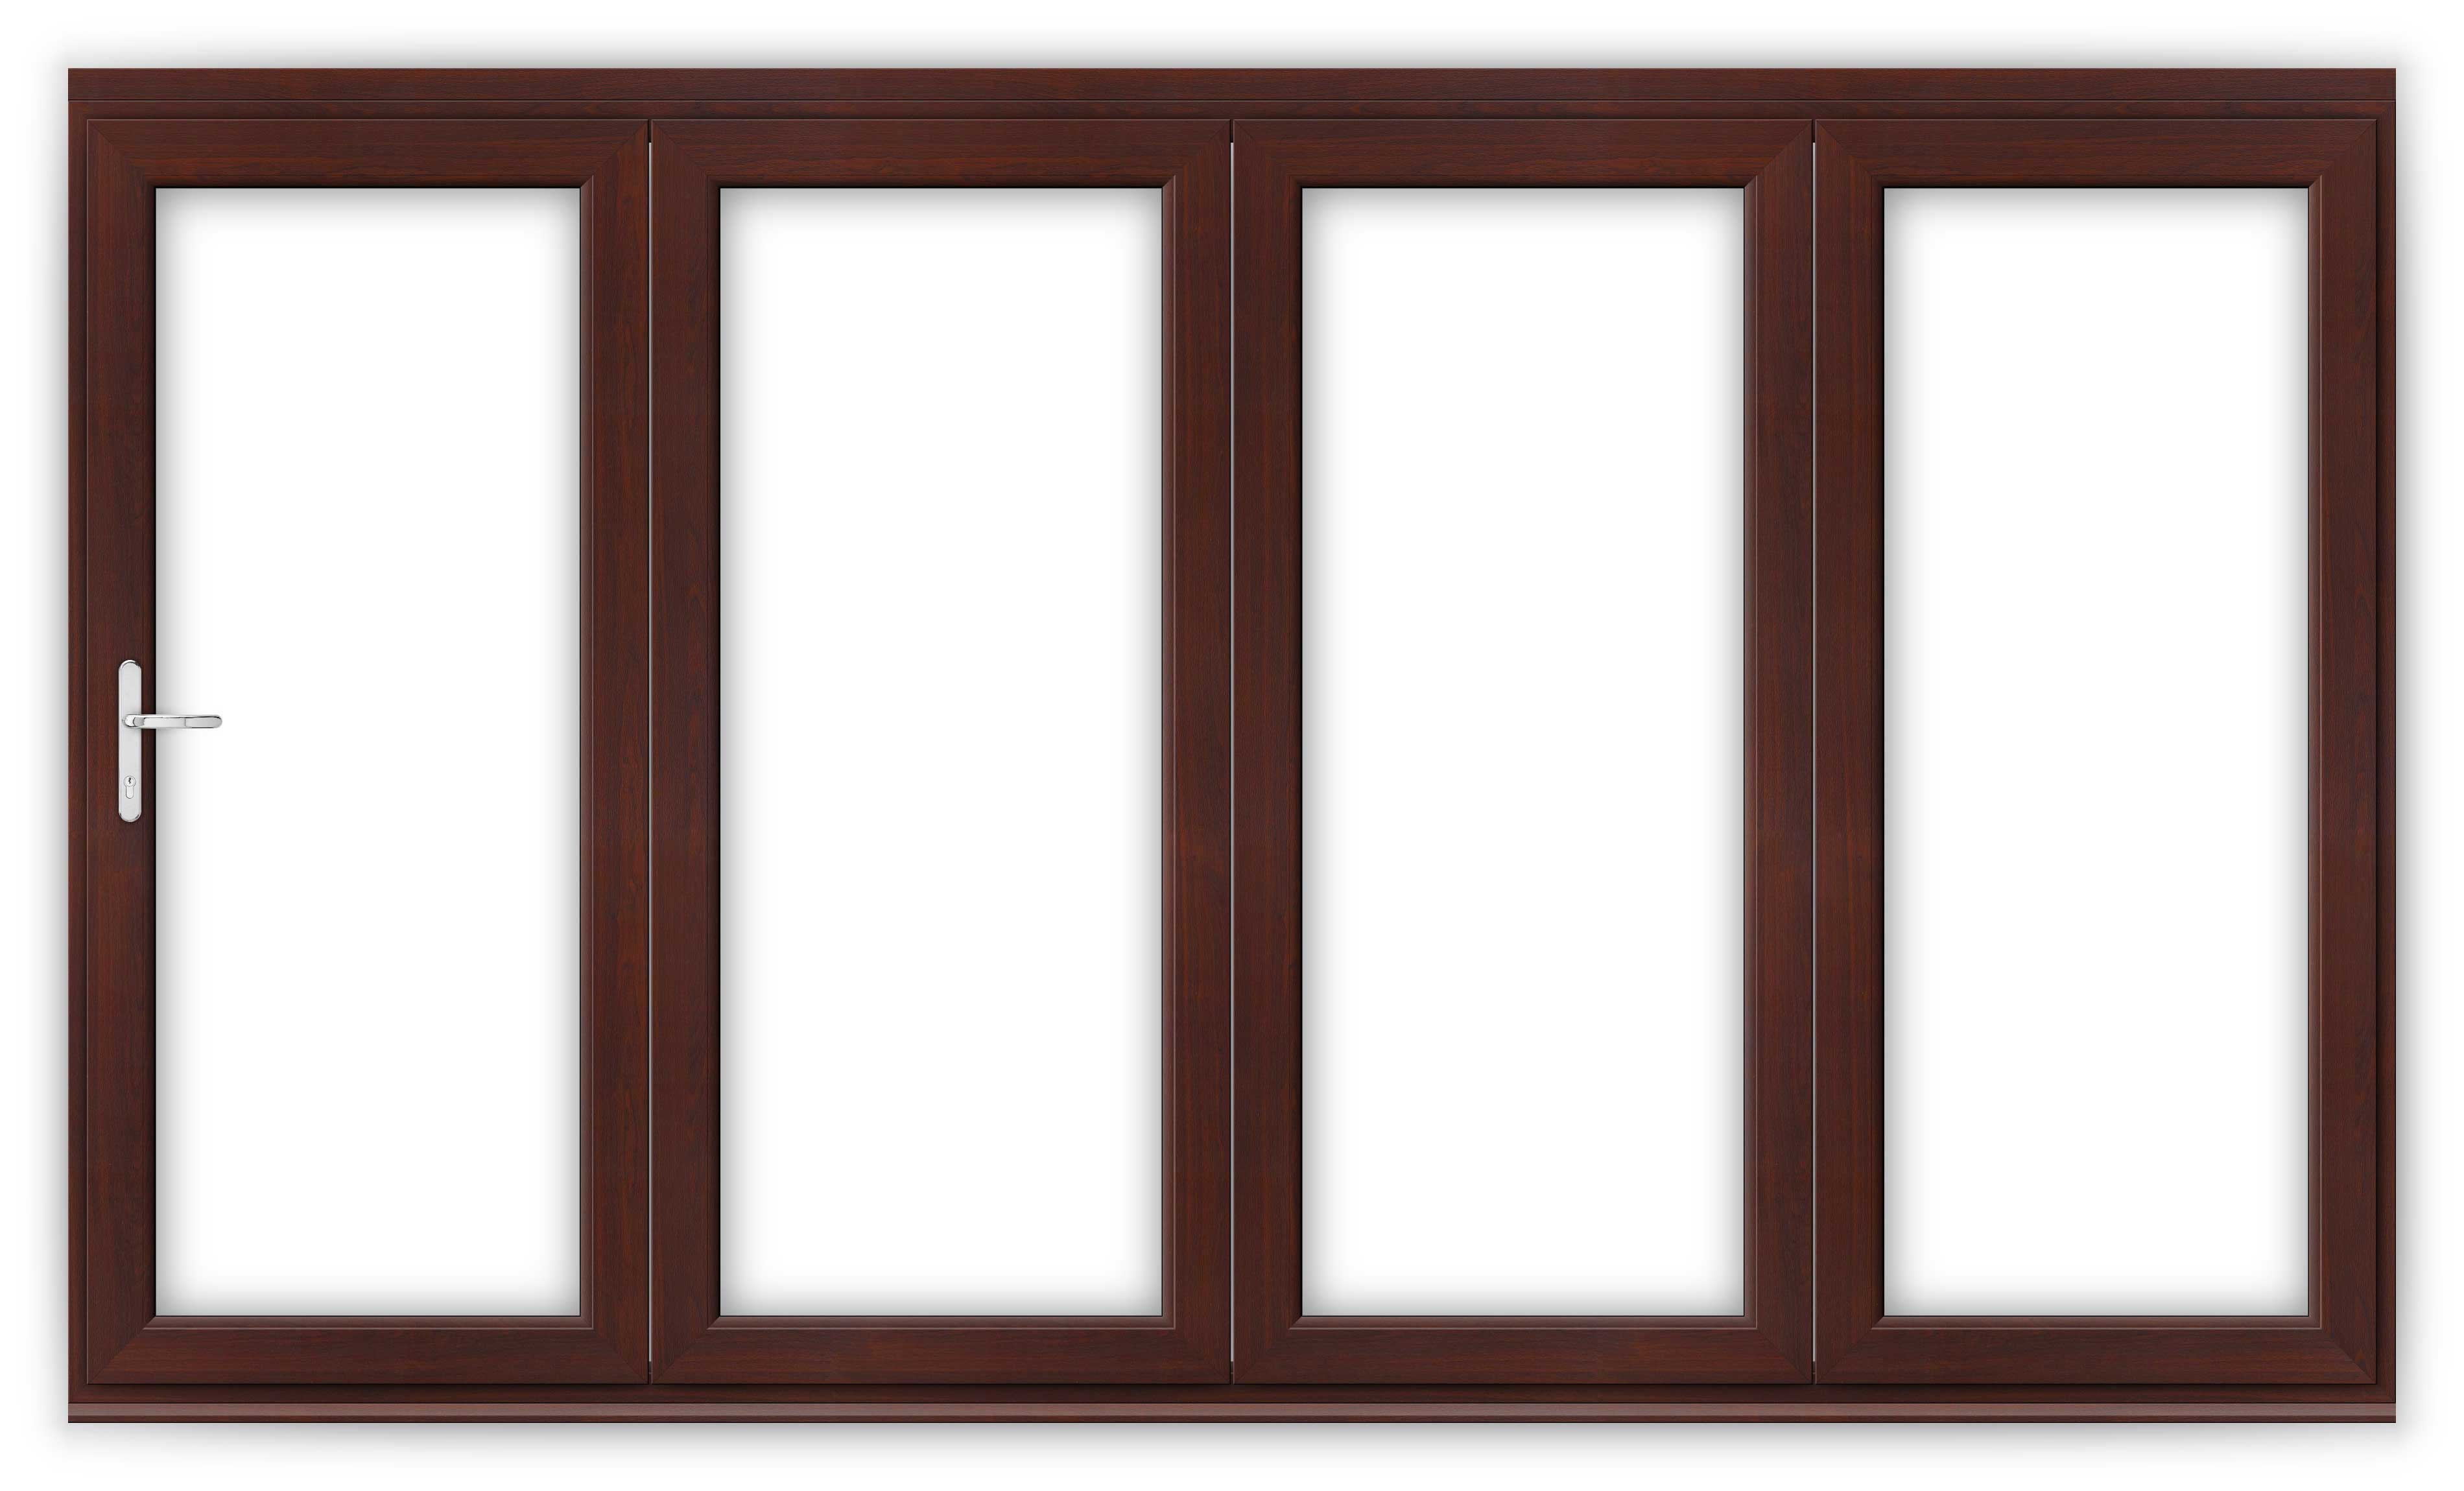 12ft Rosewood uPVC Bifold Door Set  sc 1 st  Flying Doors & 12ft Rosewood uPVC Bifold Folding Doors | Flying Doors